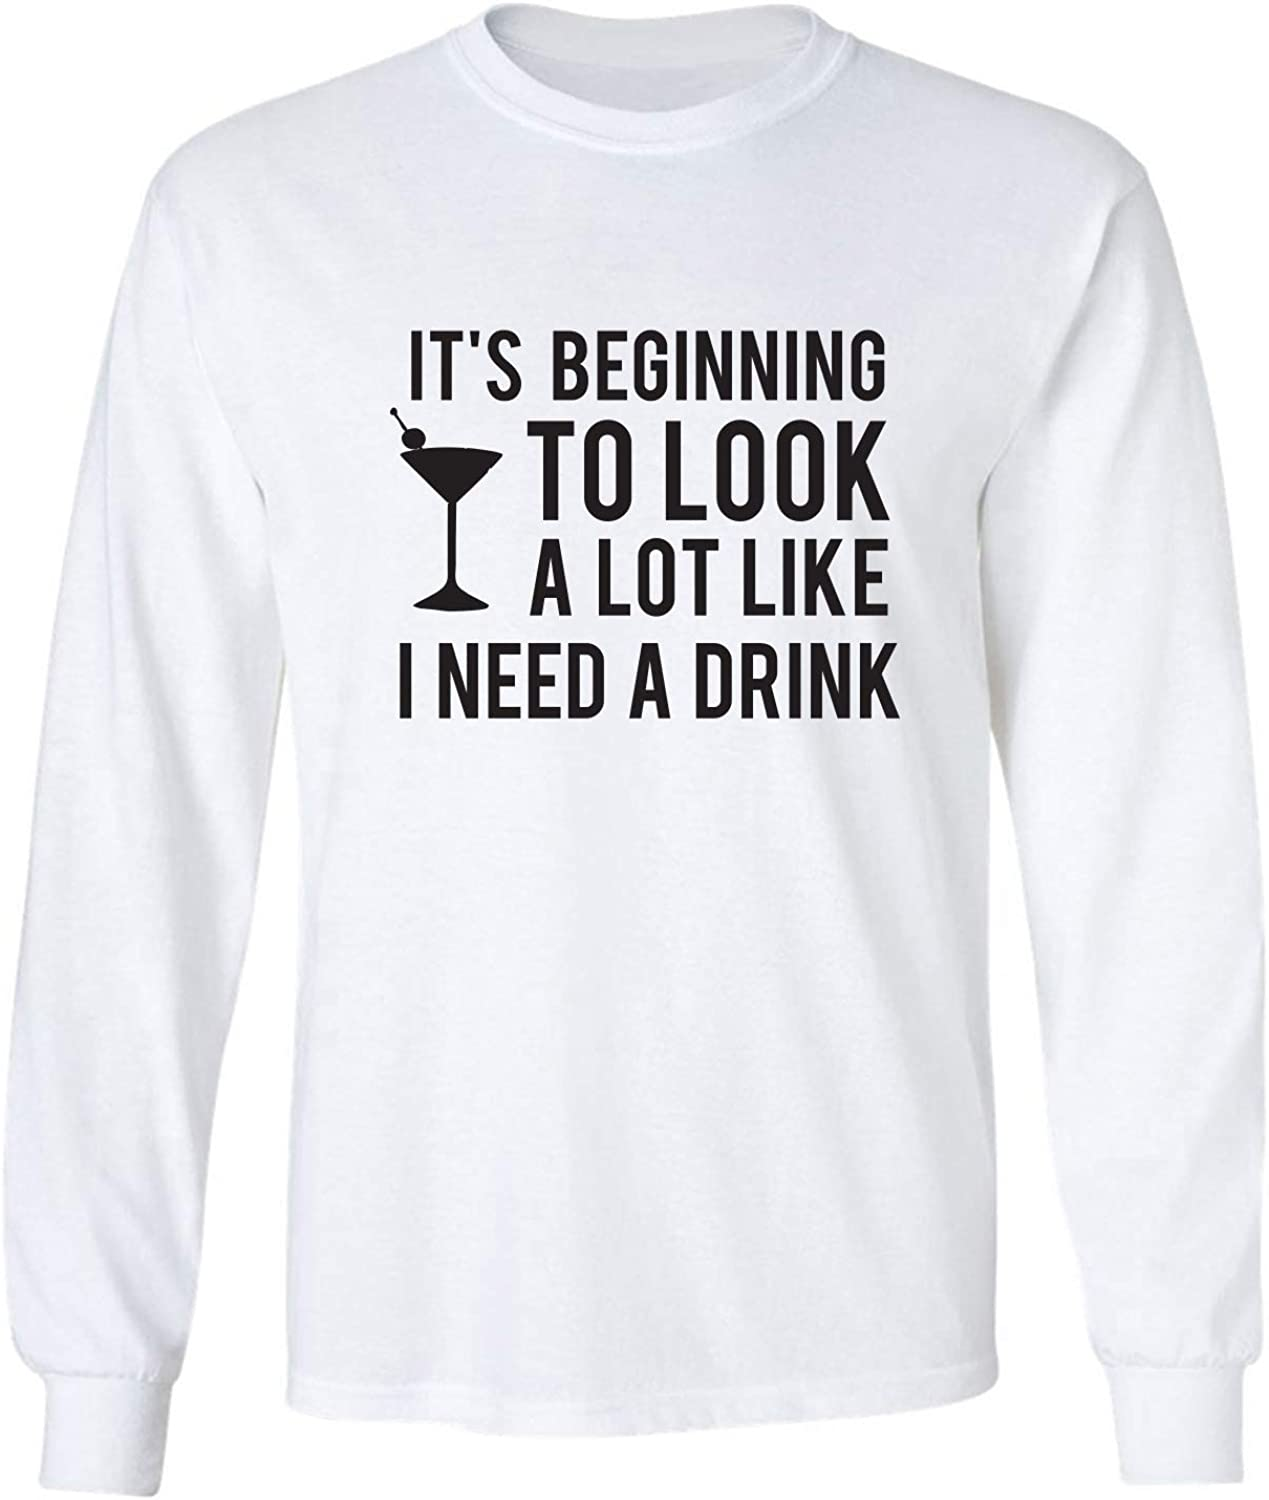 It's Beginning to Look A Lot Like Adult Long Sleeve T-Shirt in White - XXX-Large